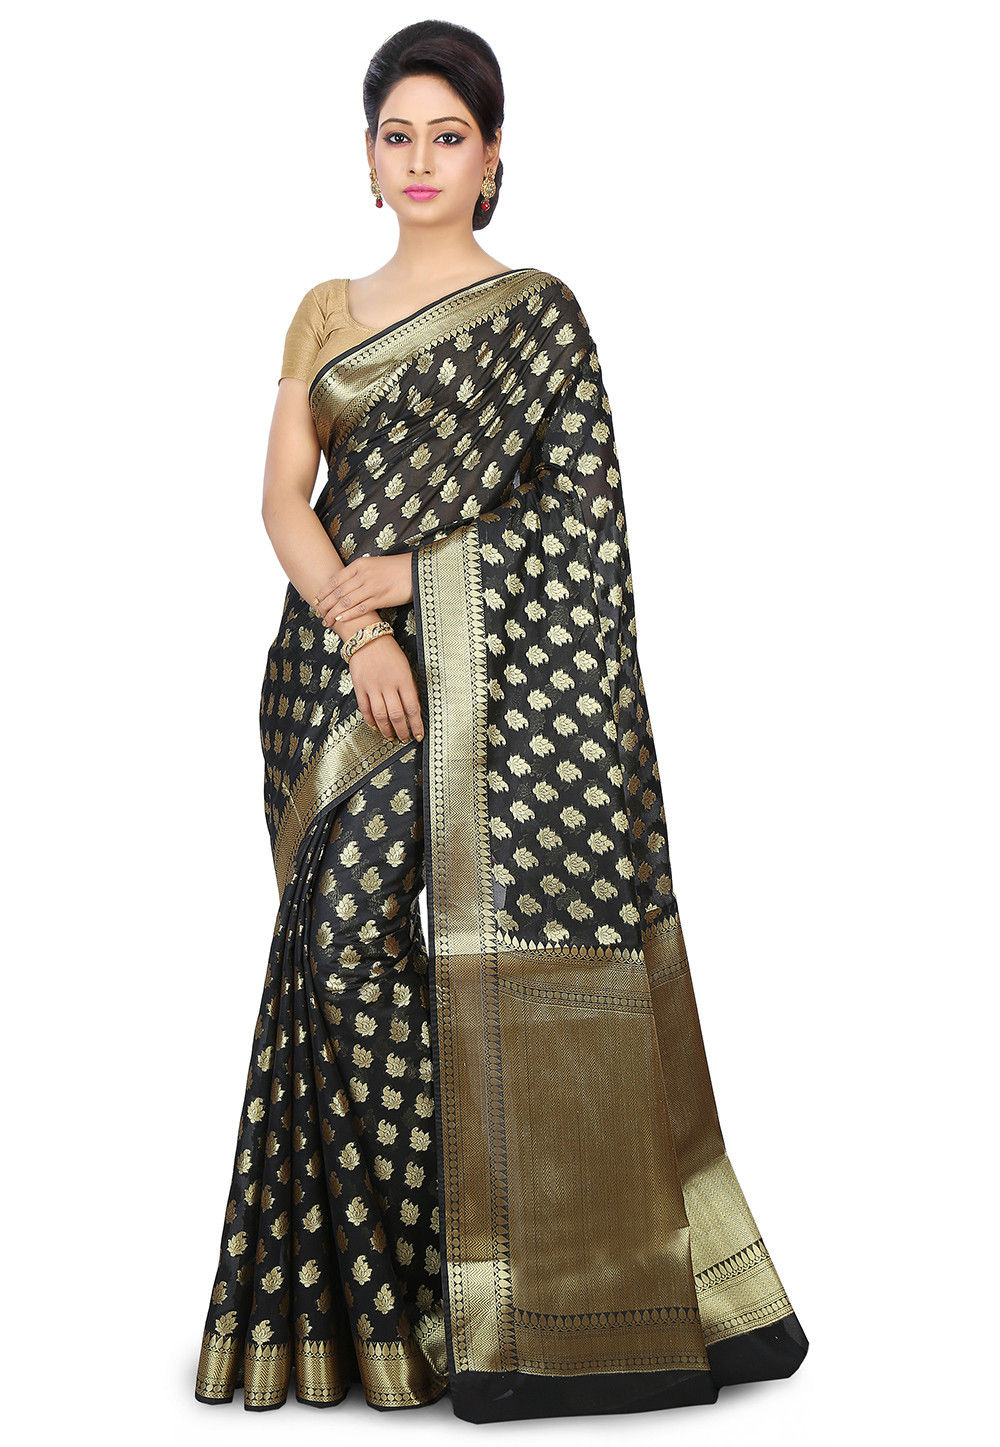 Woven Chanderi Silk Saree in Black